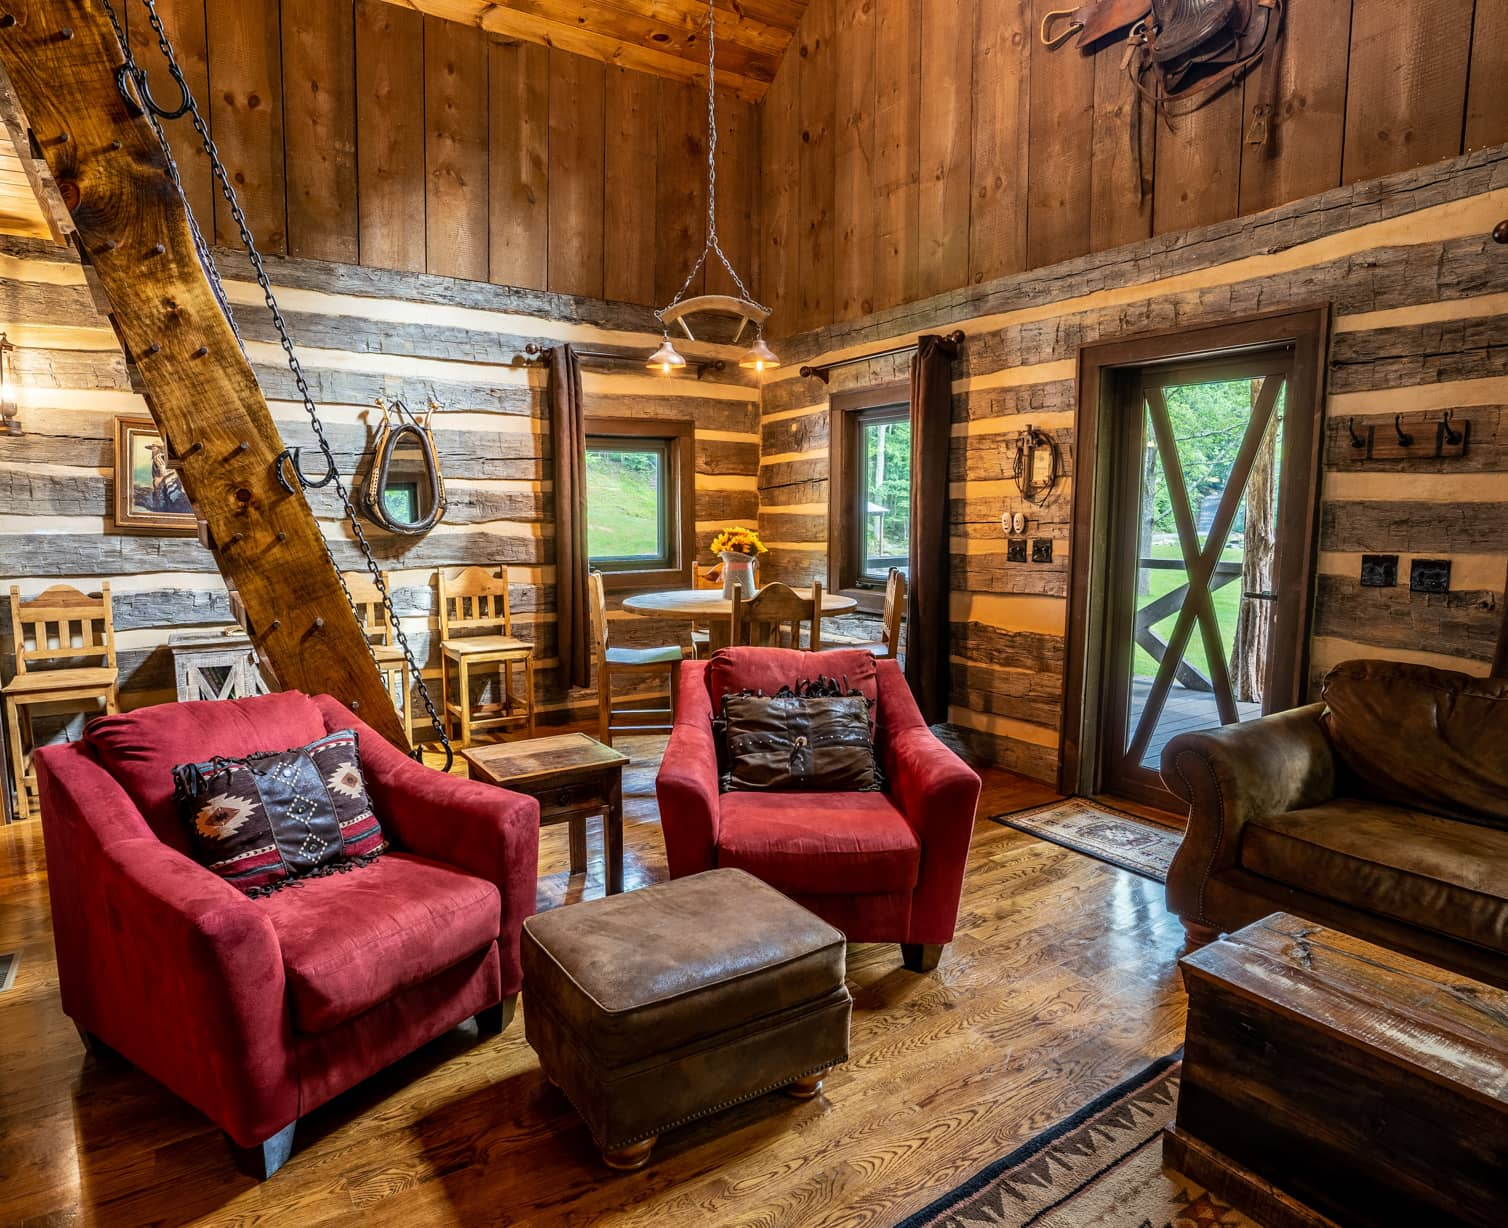 Cowboy cabin living room with ample seating, a dining table, and wide ladder leading to the loft